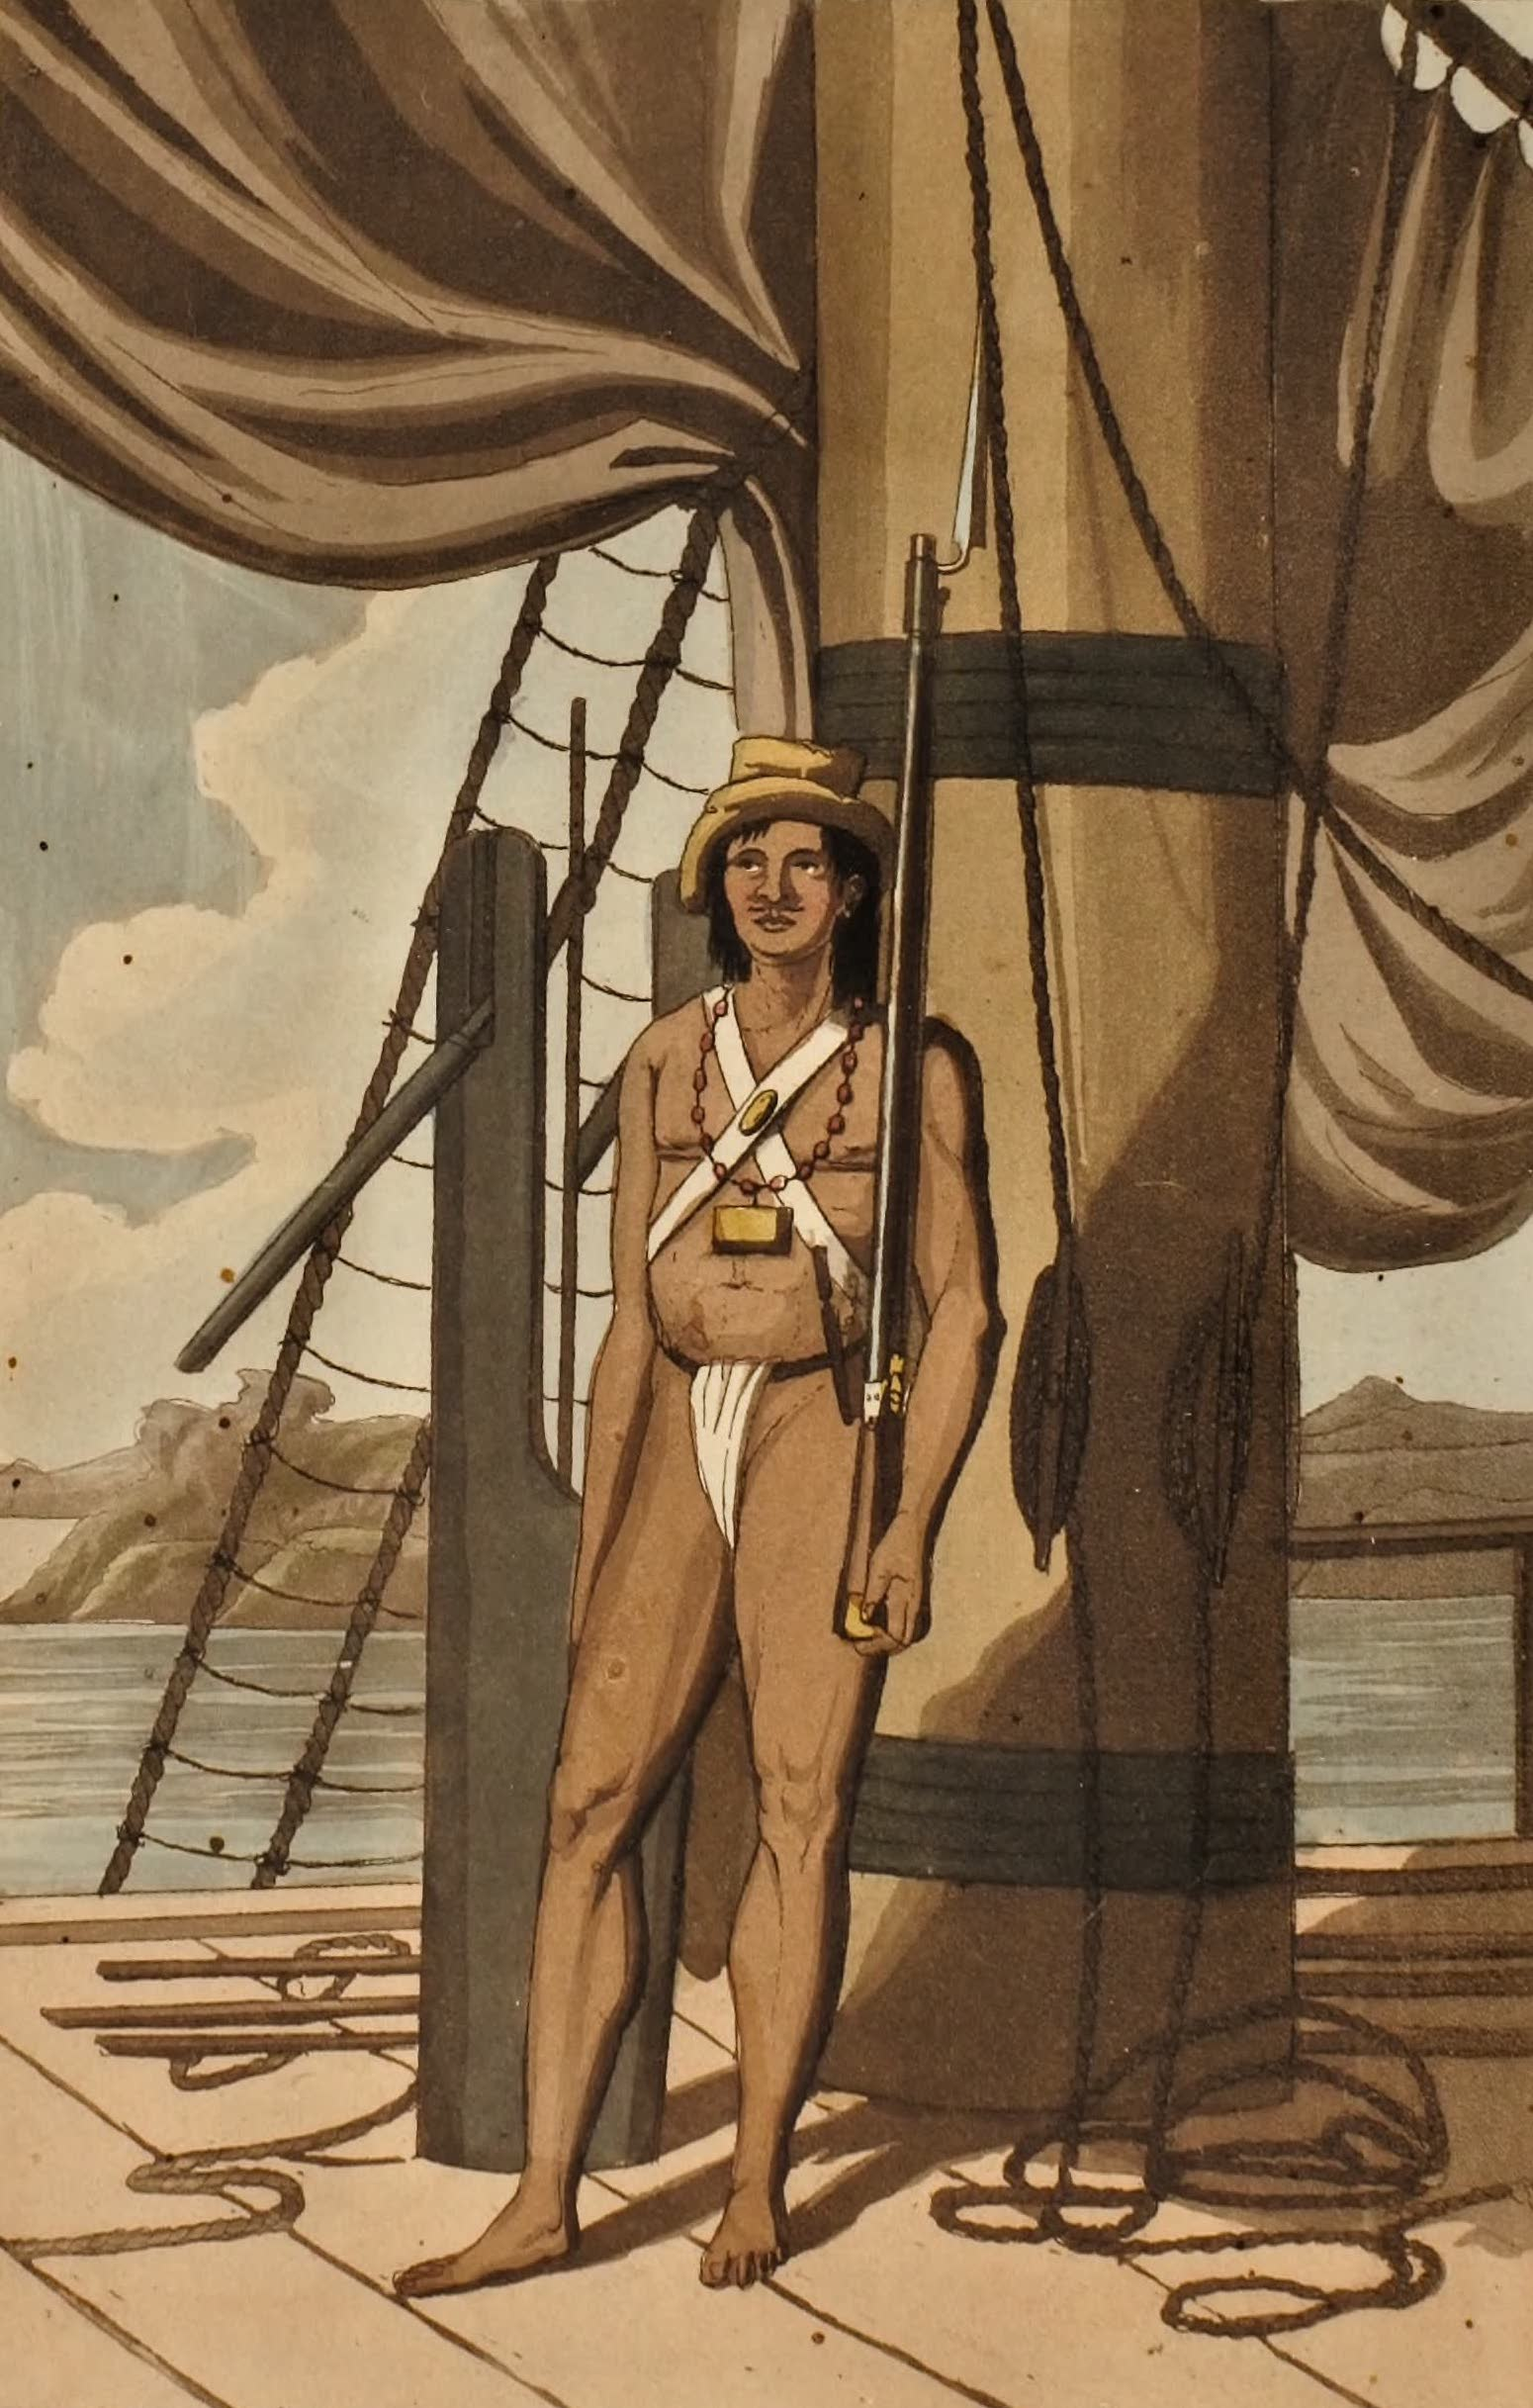 Journal of an Expedition 1400 miles up the Orinoco - A Native Soldier (1822)